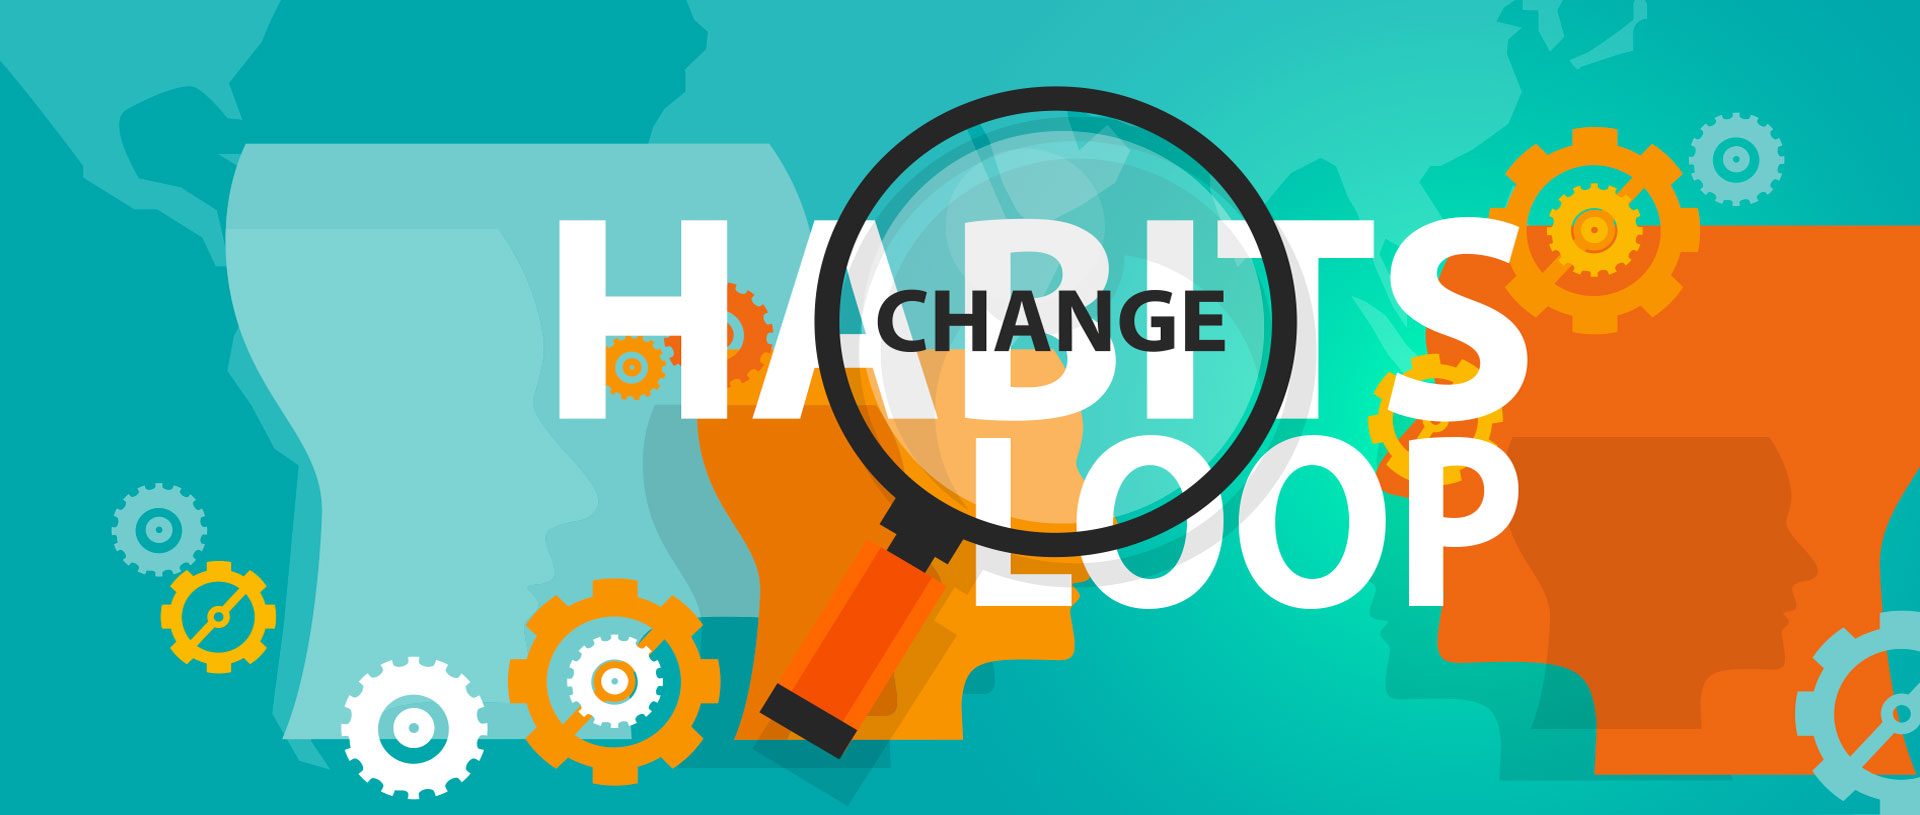 Real Way Of Life The Change Habit Loop